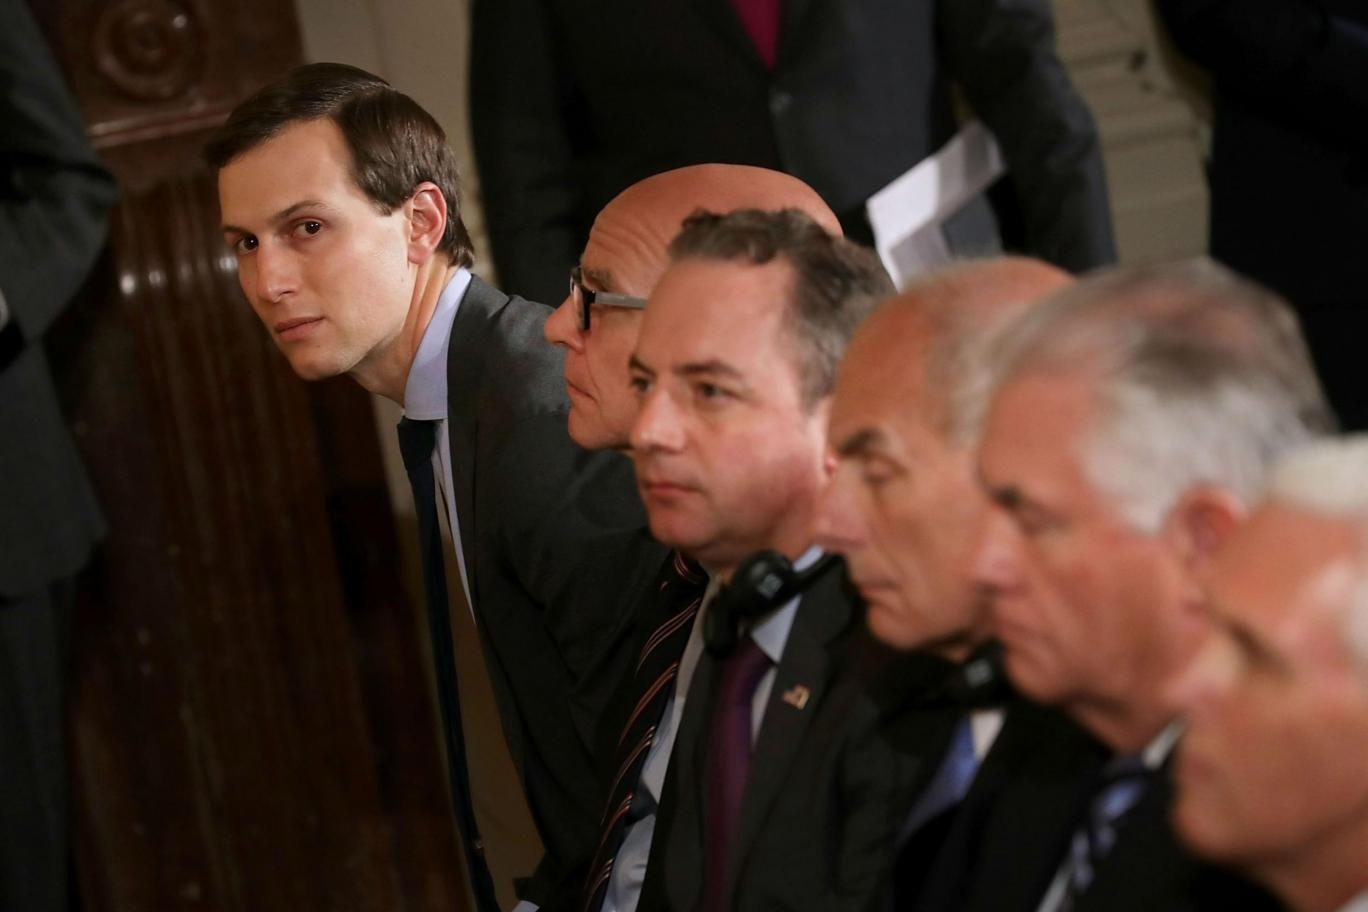 FBI Reportedly Scrutinizing Trump Son-In-Law Kushner's Russia Contacts